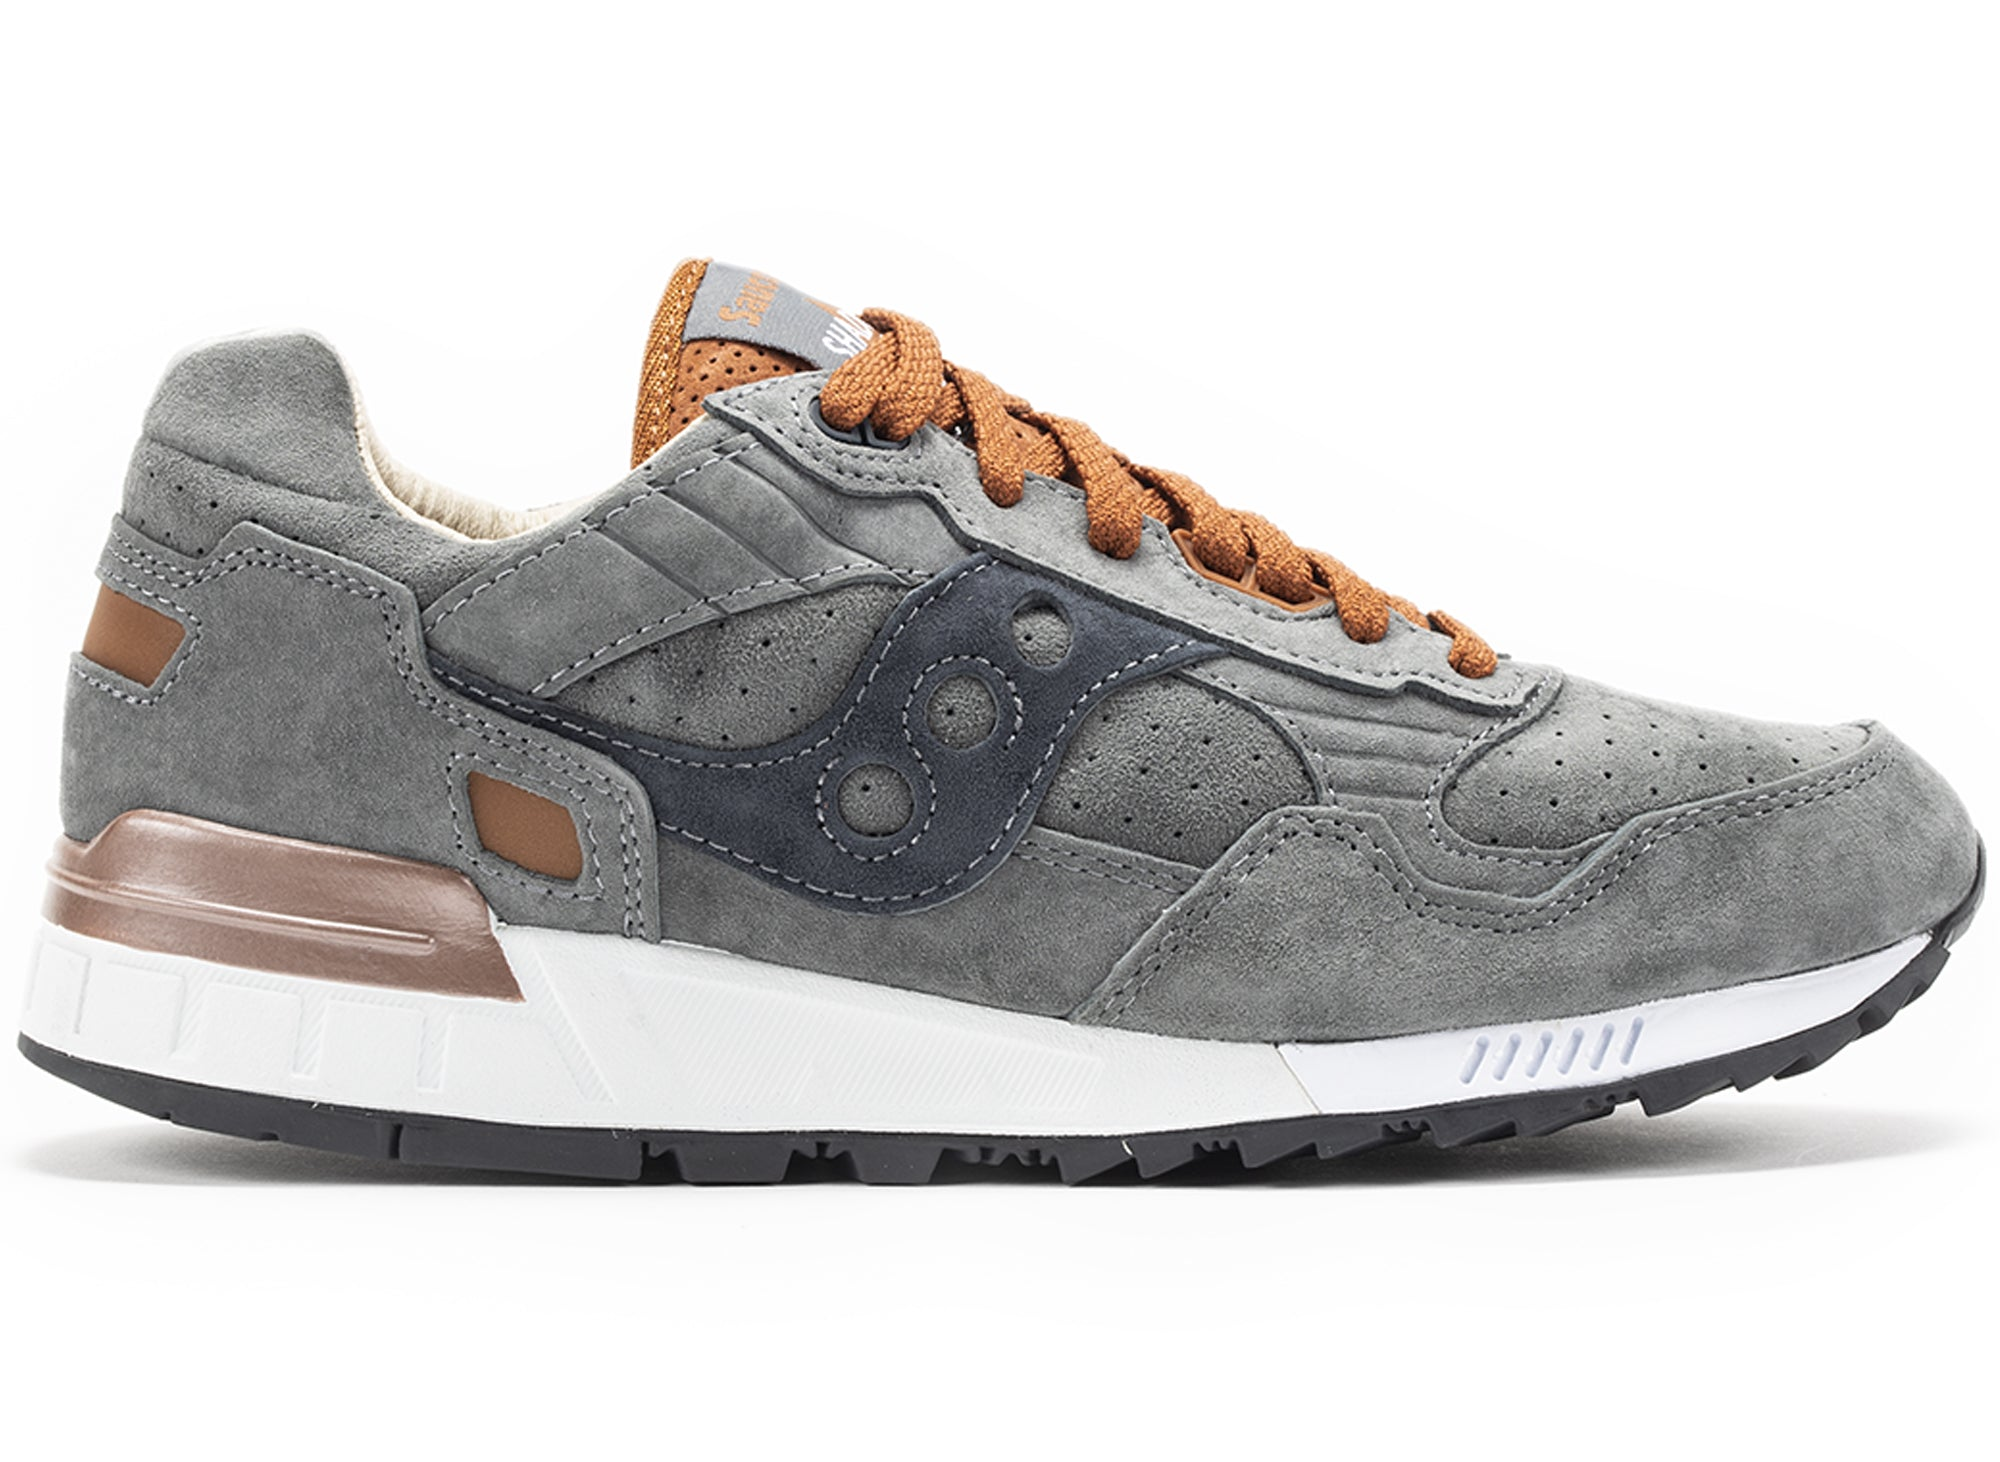 SAUCONY AZURA WEATHERED LUXURY